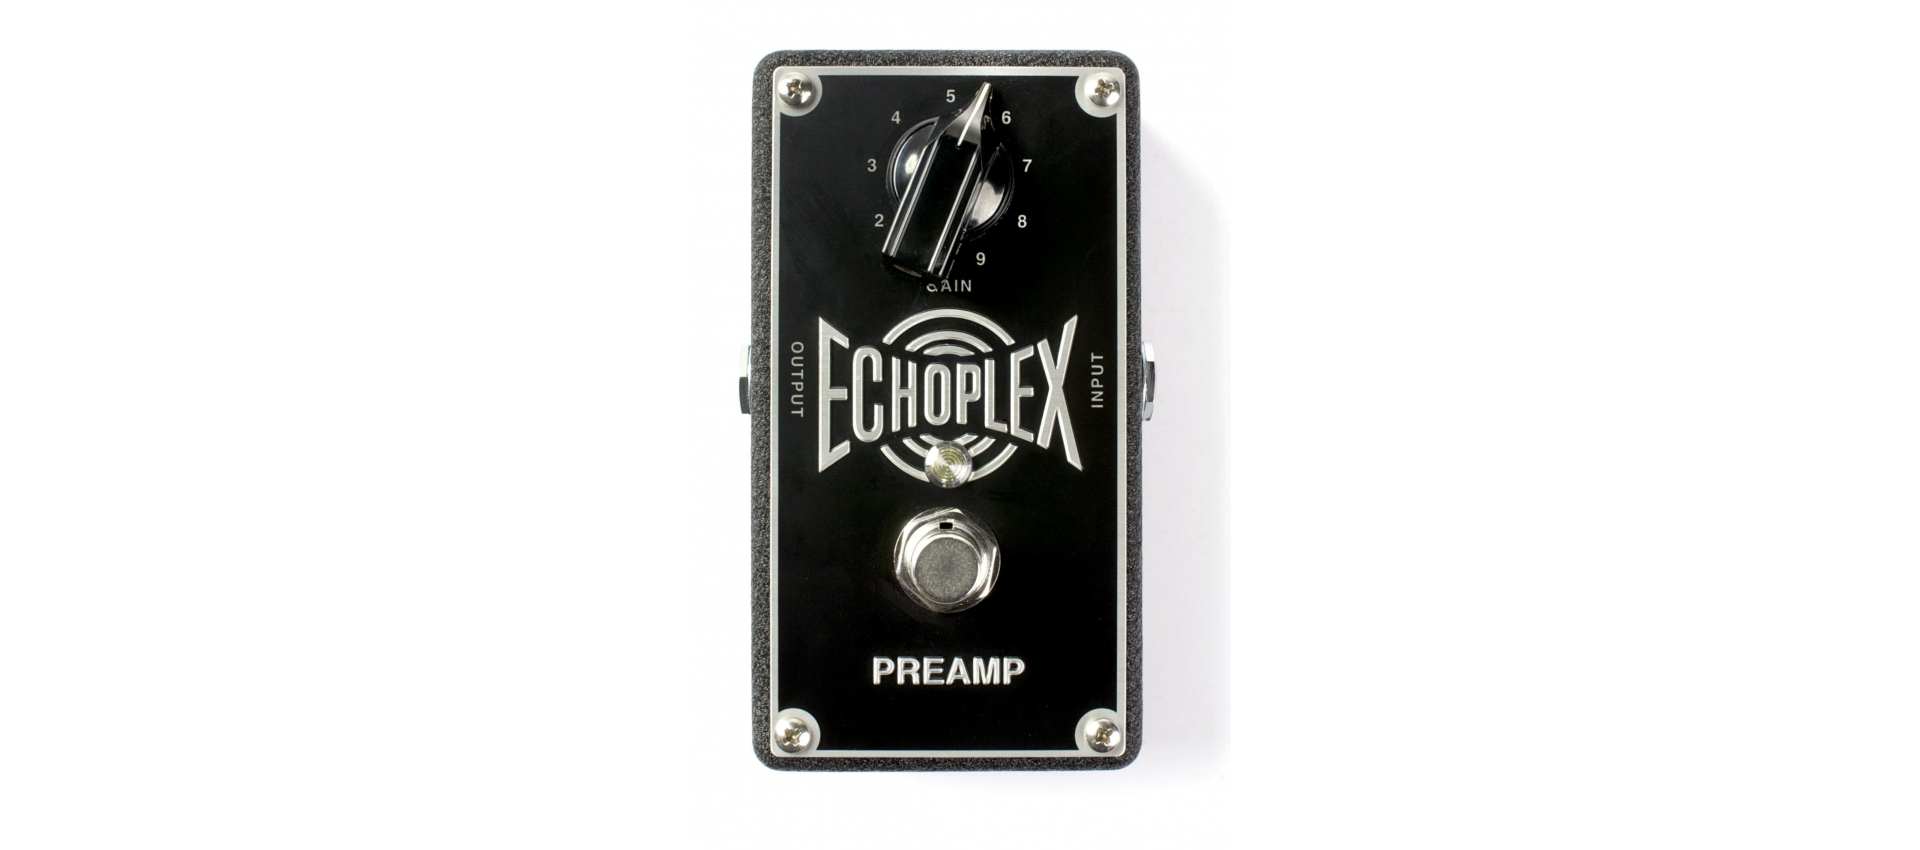 jim dunlop echoplex preamp luckymusic. Black Bedroom Furniture Sets. Home Design Ideas